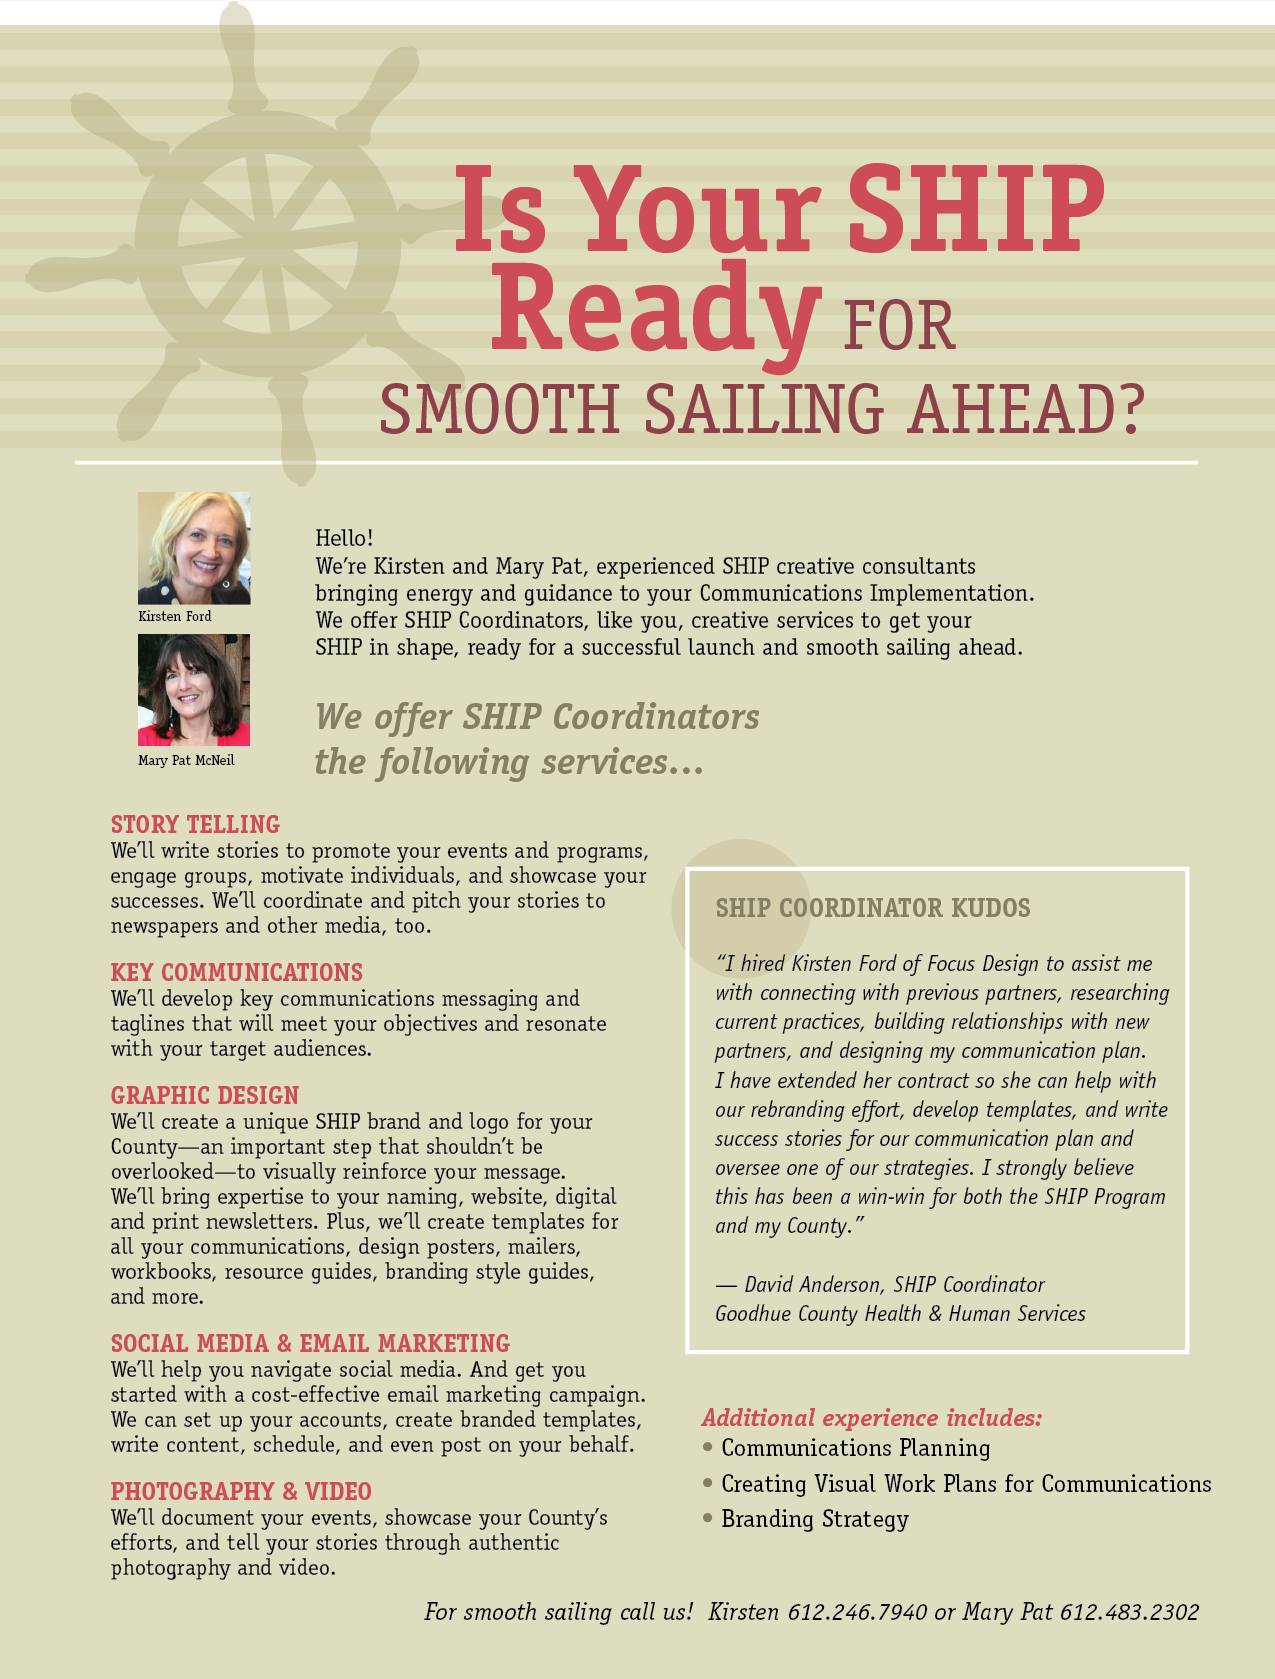 Is your SHIP ready for smooth sailing ahead?